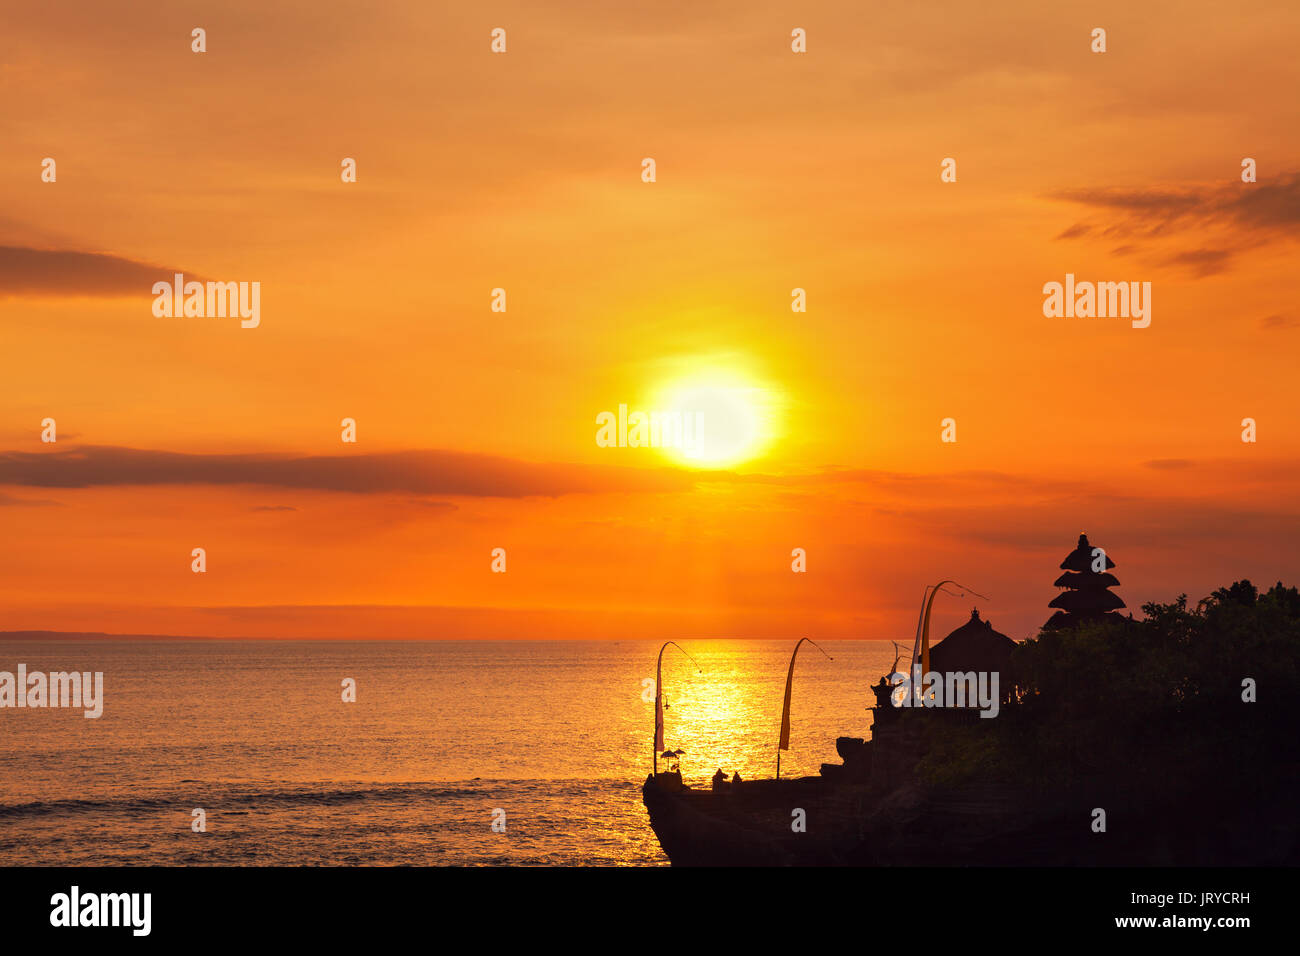 Scenic landscape of high cliff and tropical sea at Uluwatu Temple, Bali, Indonesia. Amazing sunset at Uluwatu temple in Bali, Indonesia - Stock Image